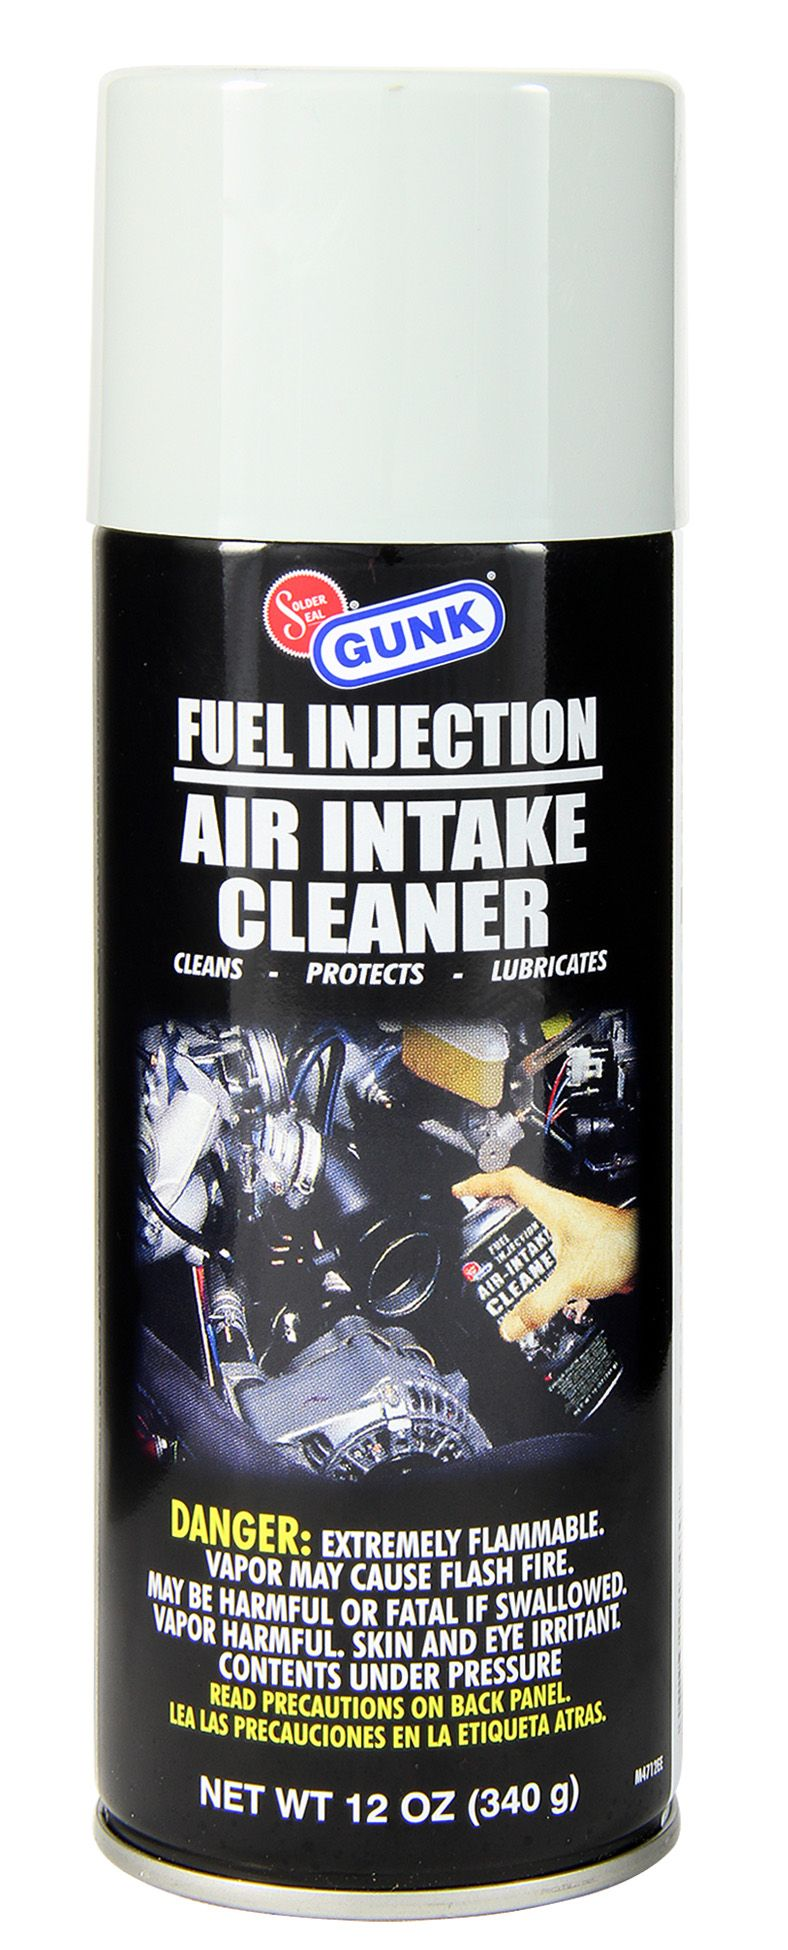 Fuel Injection Air Intake Cleaner Image